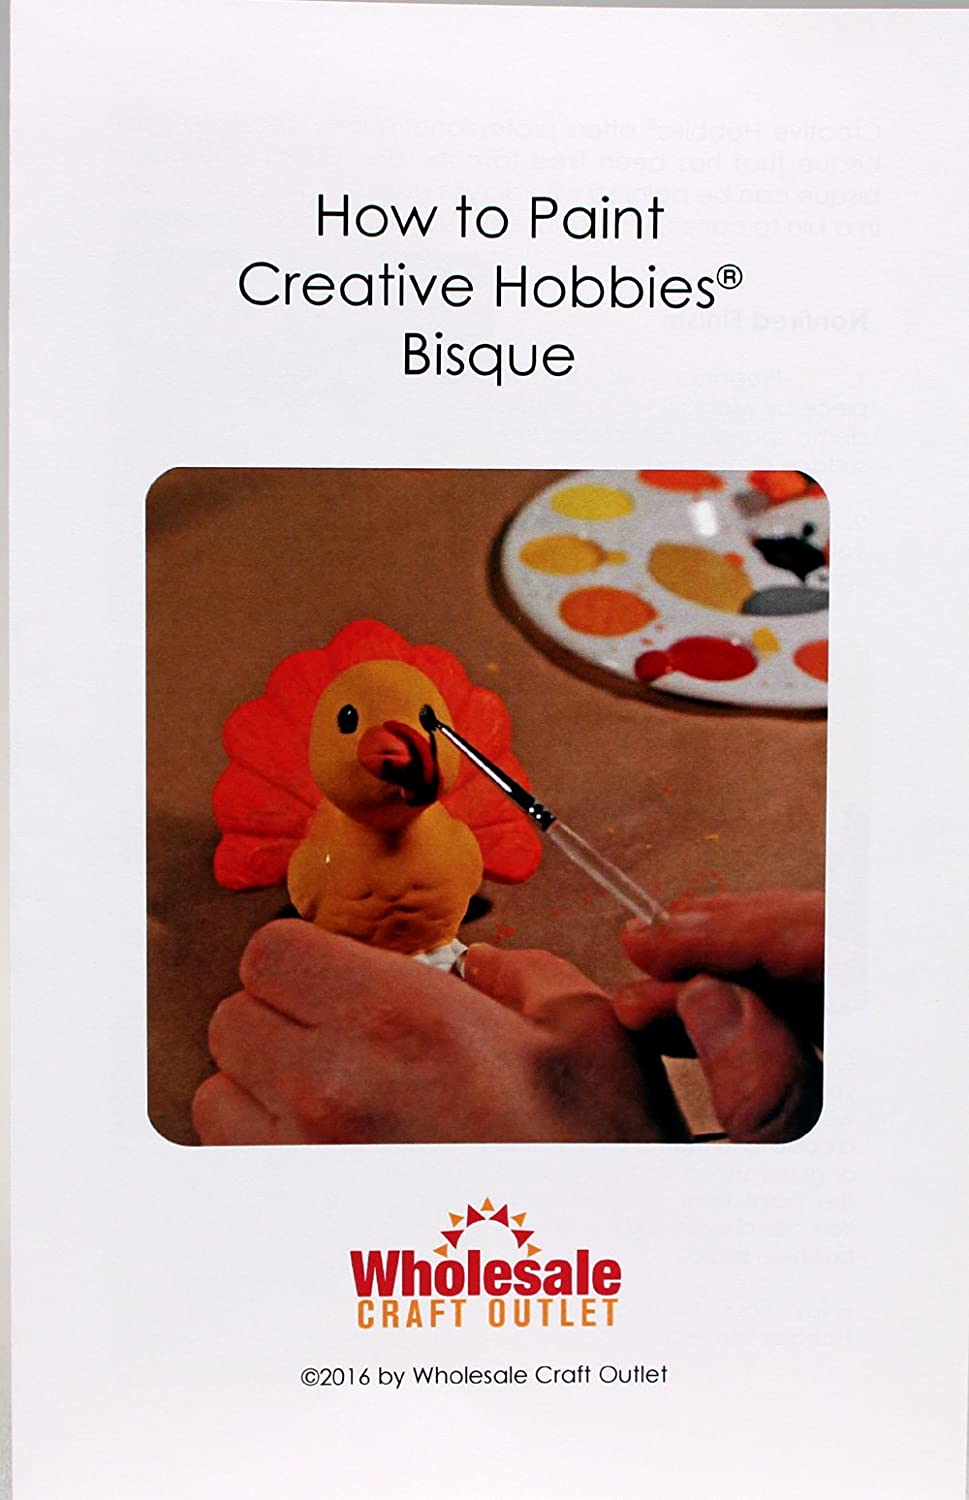 Creative Hobbies Un-Glazed Ceramic Bisque Tiles for Decorating with Underglazes and Glazes 4.25 X 4.25 Inch Square Includes How to Paint Bisque Book Pack of 10